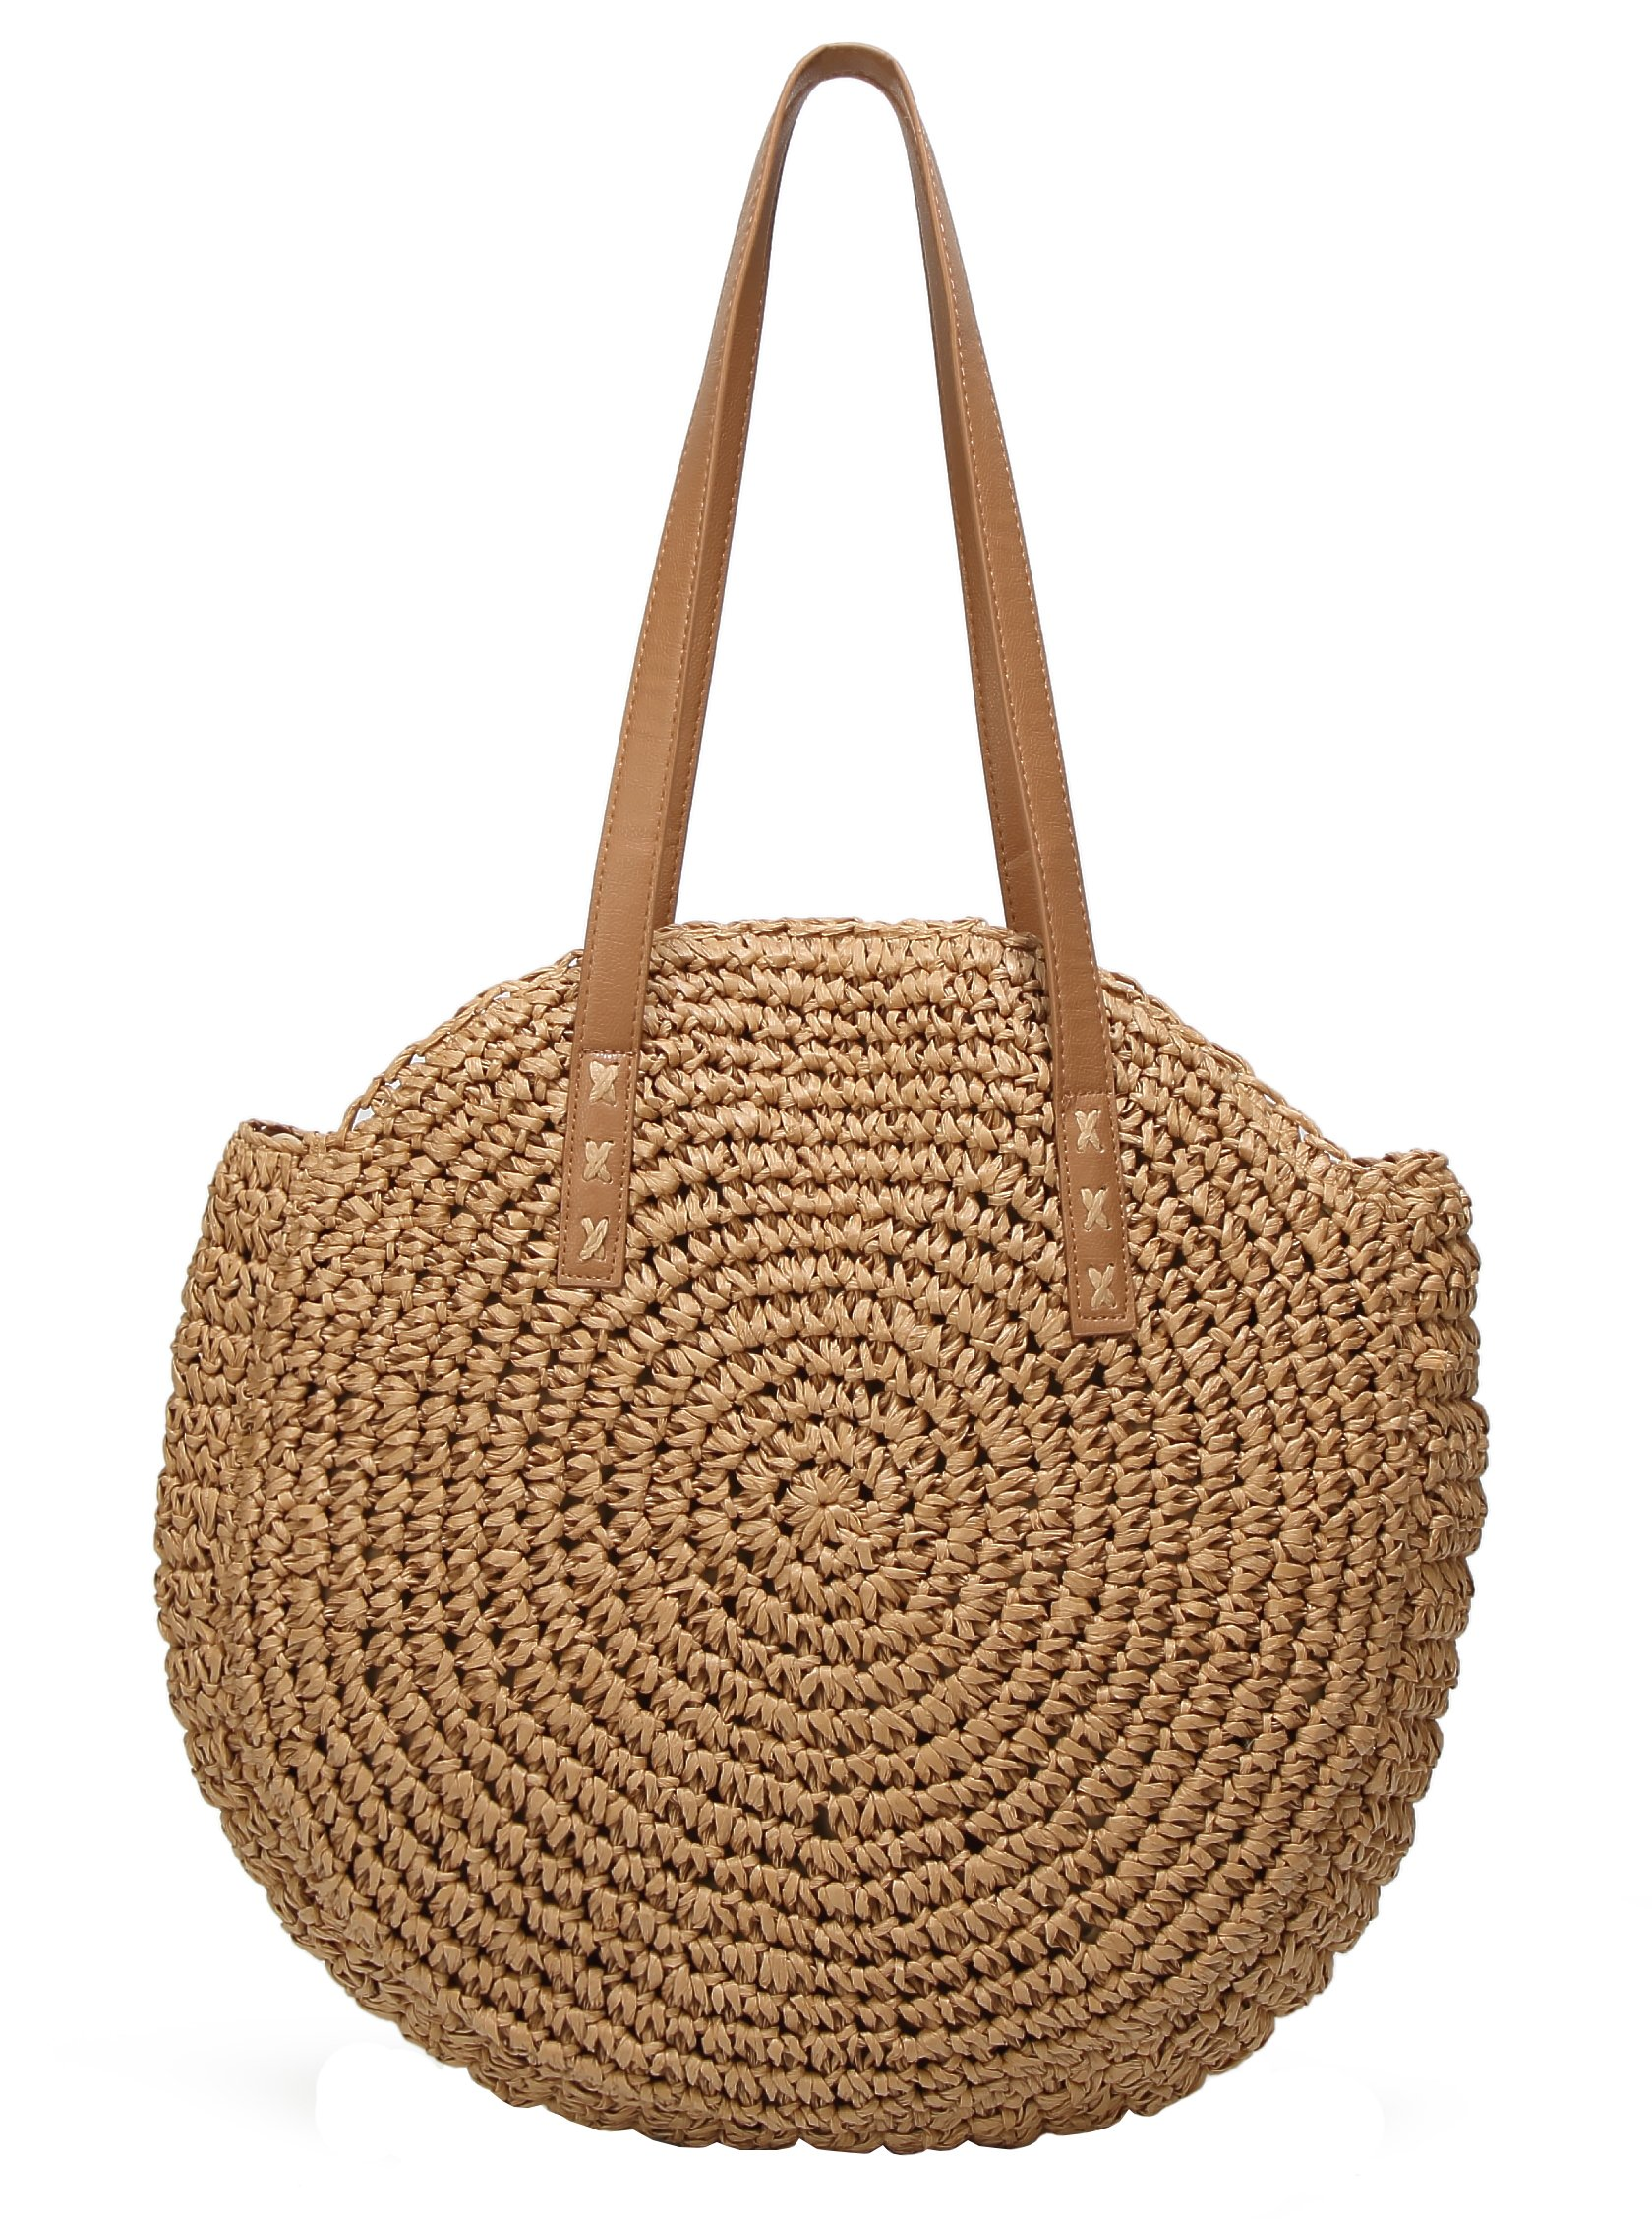 Molodo Summer Straw Handbags Top Handle Crossbody Shoulder Satchels Tote Beach Purse Bags Camel